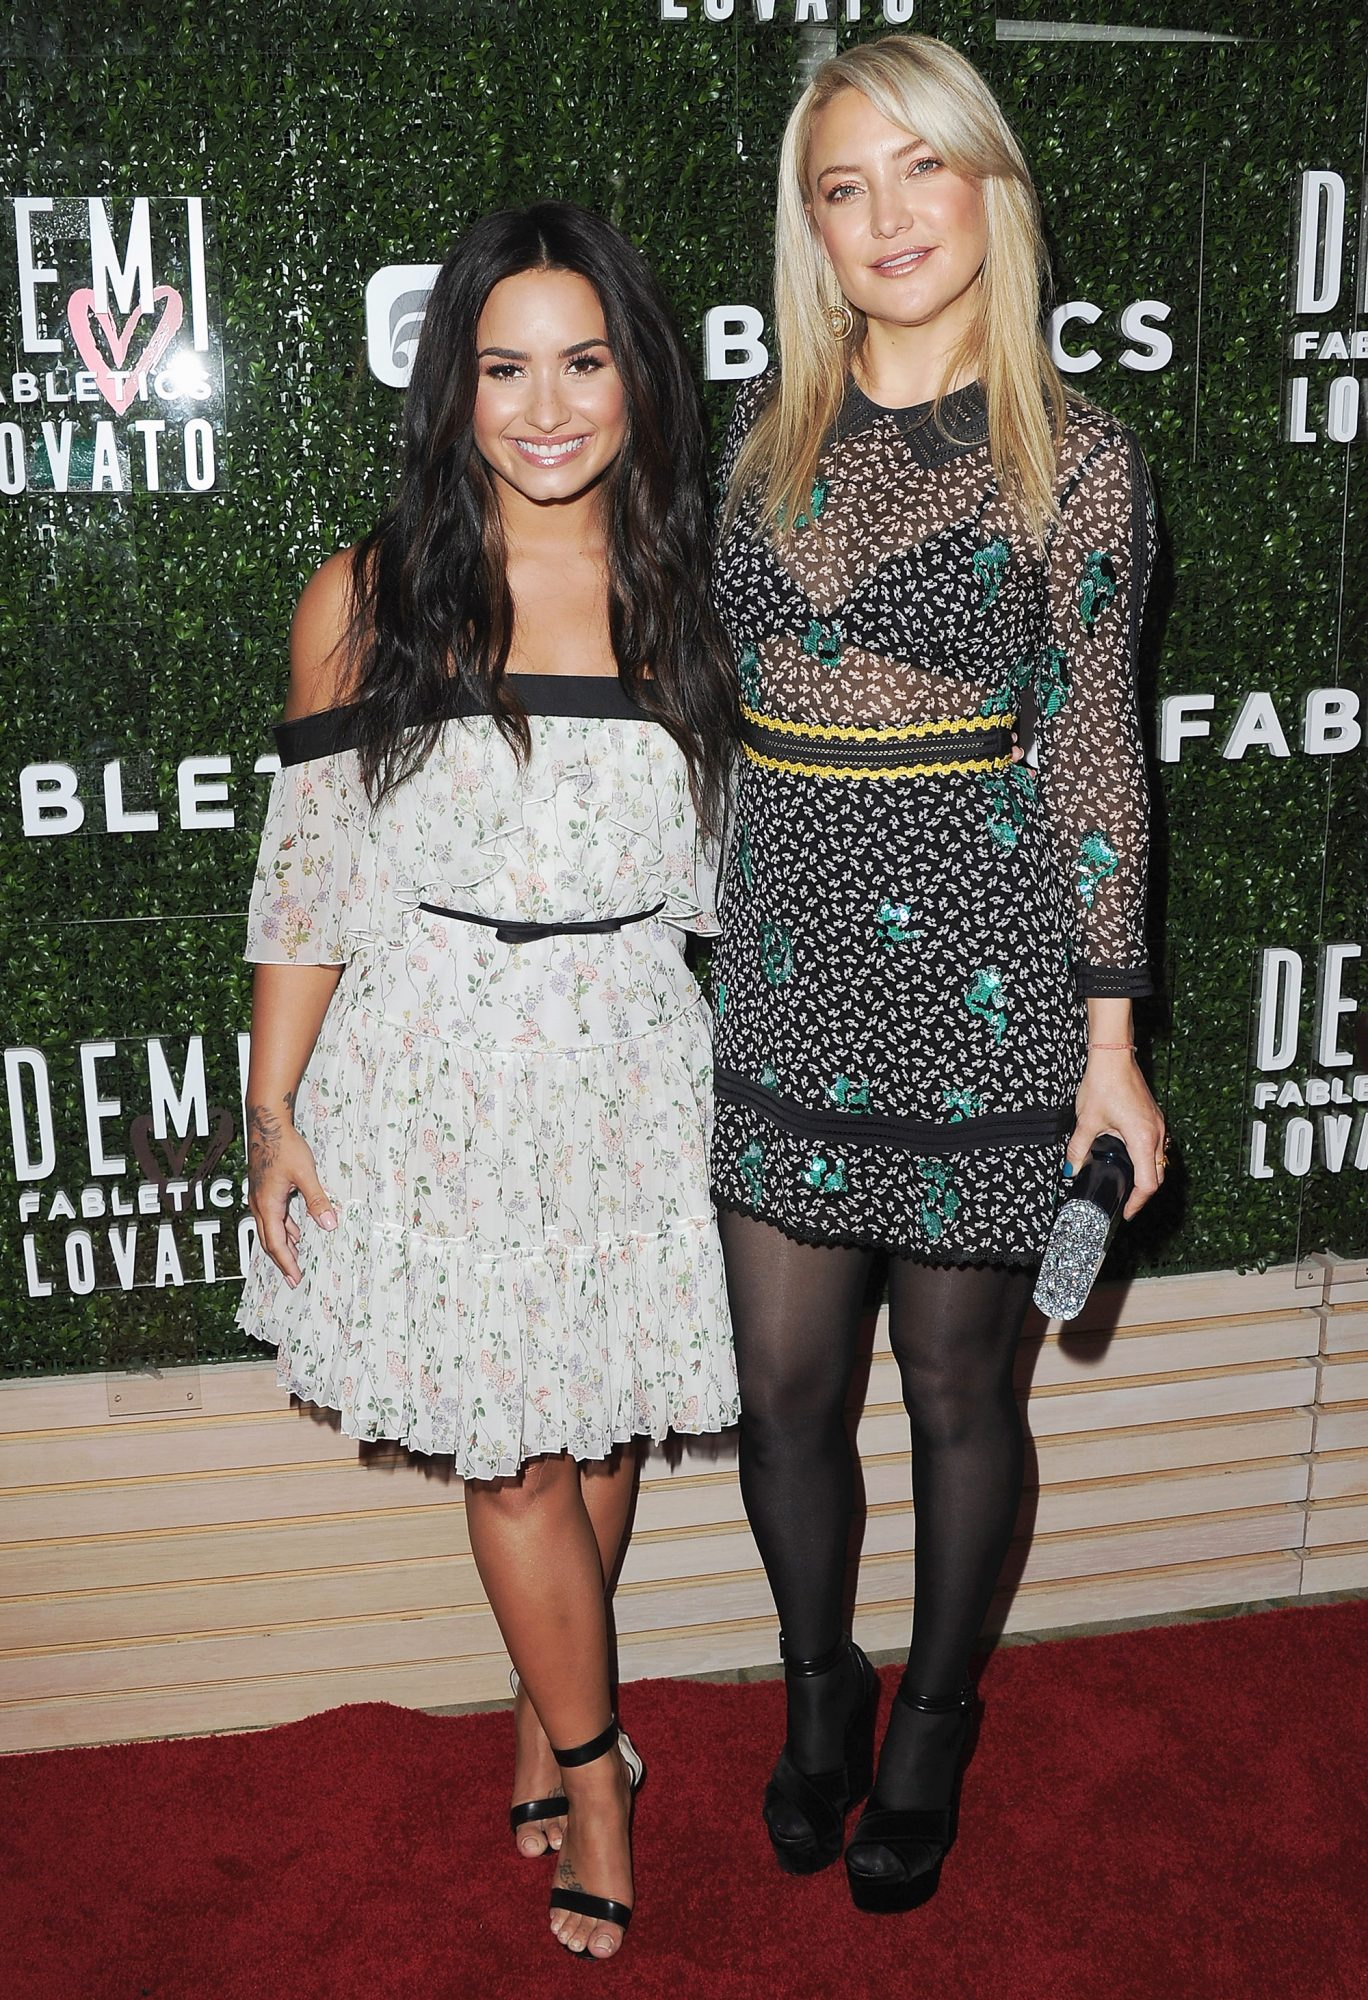 Demi Lovato's Fabletics Collab with Kate Hudson Started from a Chance Meeting at the Gym